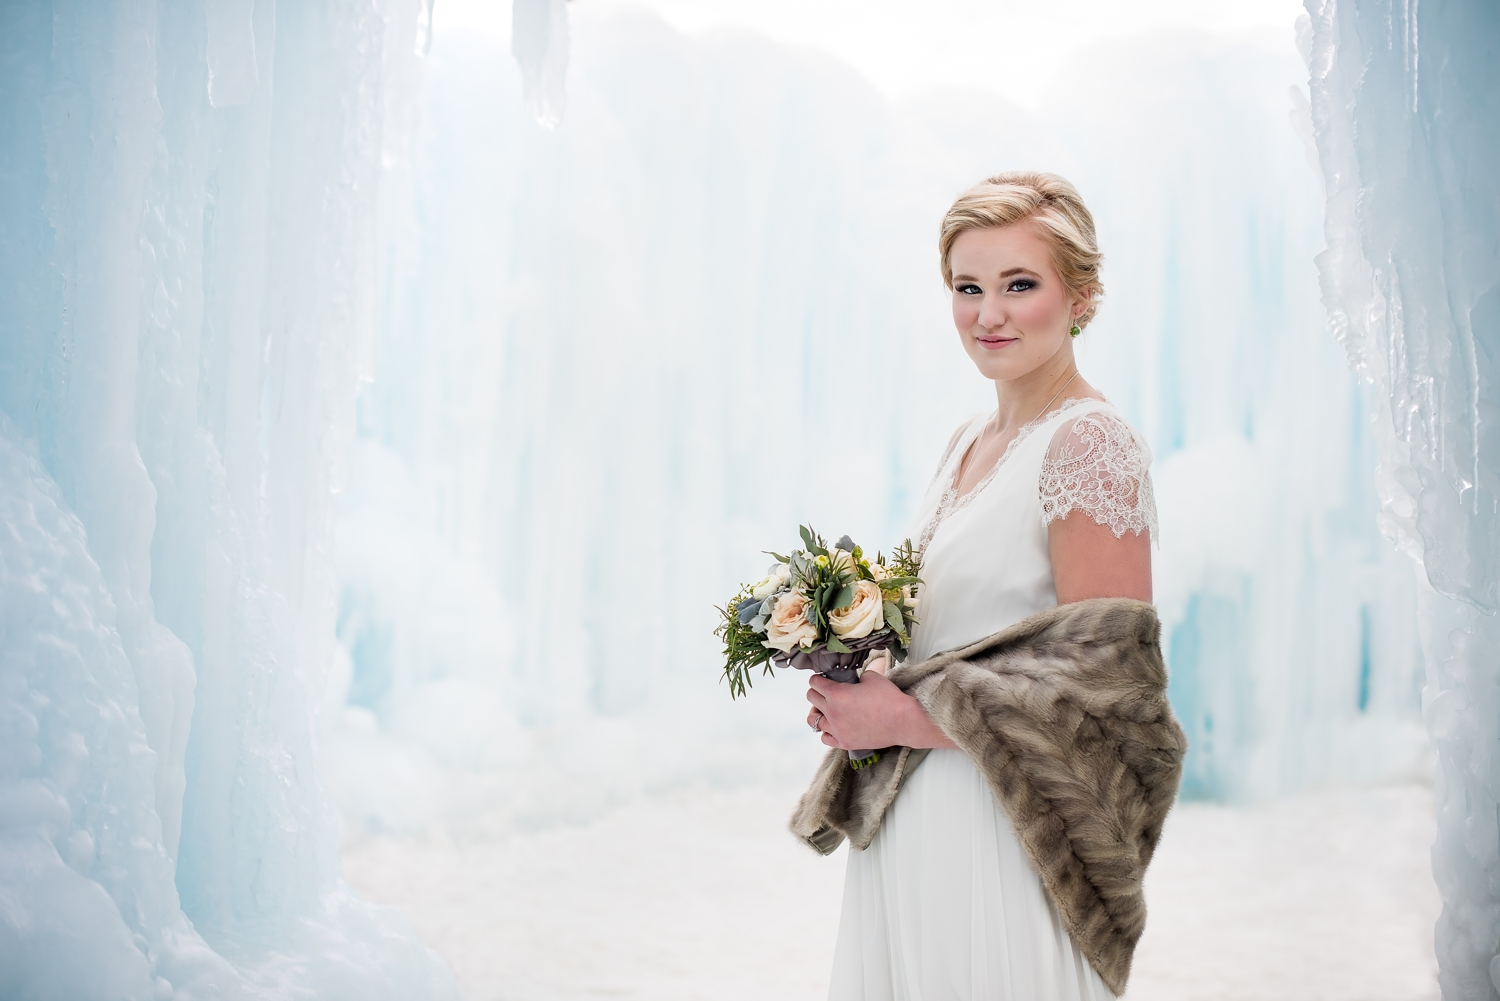 Bride wearing a Christos Bridal wedding dress standing in an ice castle with a fur shawl